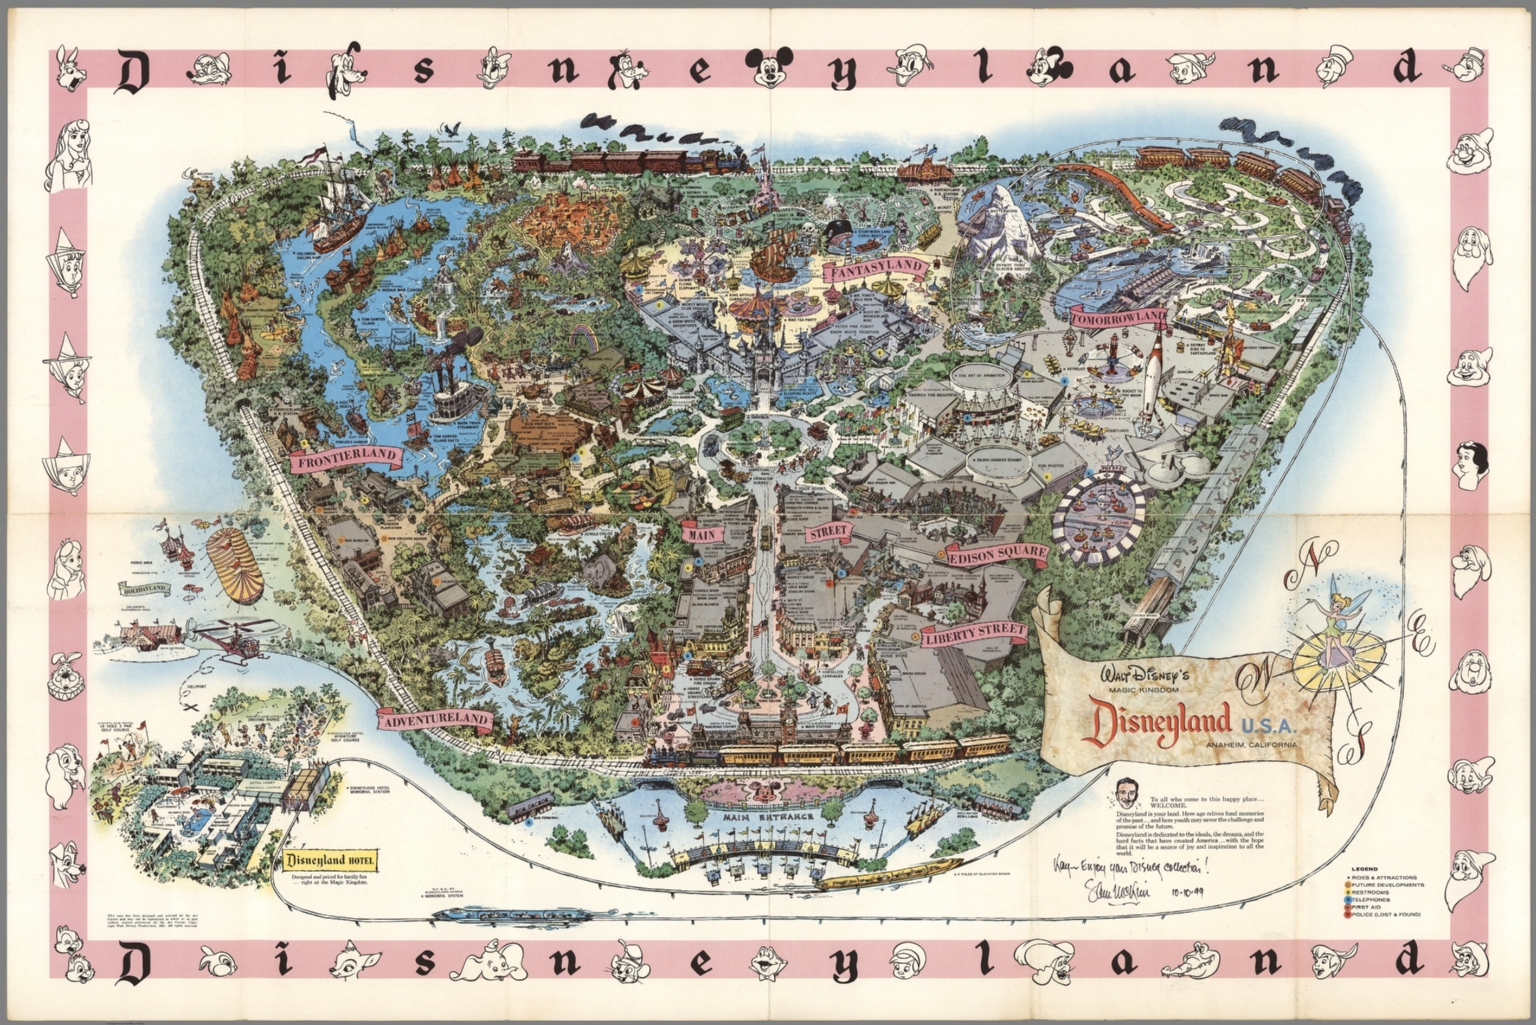 Map Of California Disney.Walt Disney S Magic Kingdom Disneyland U S A Anaheim California